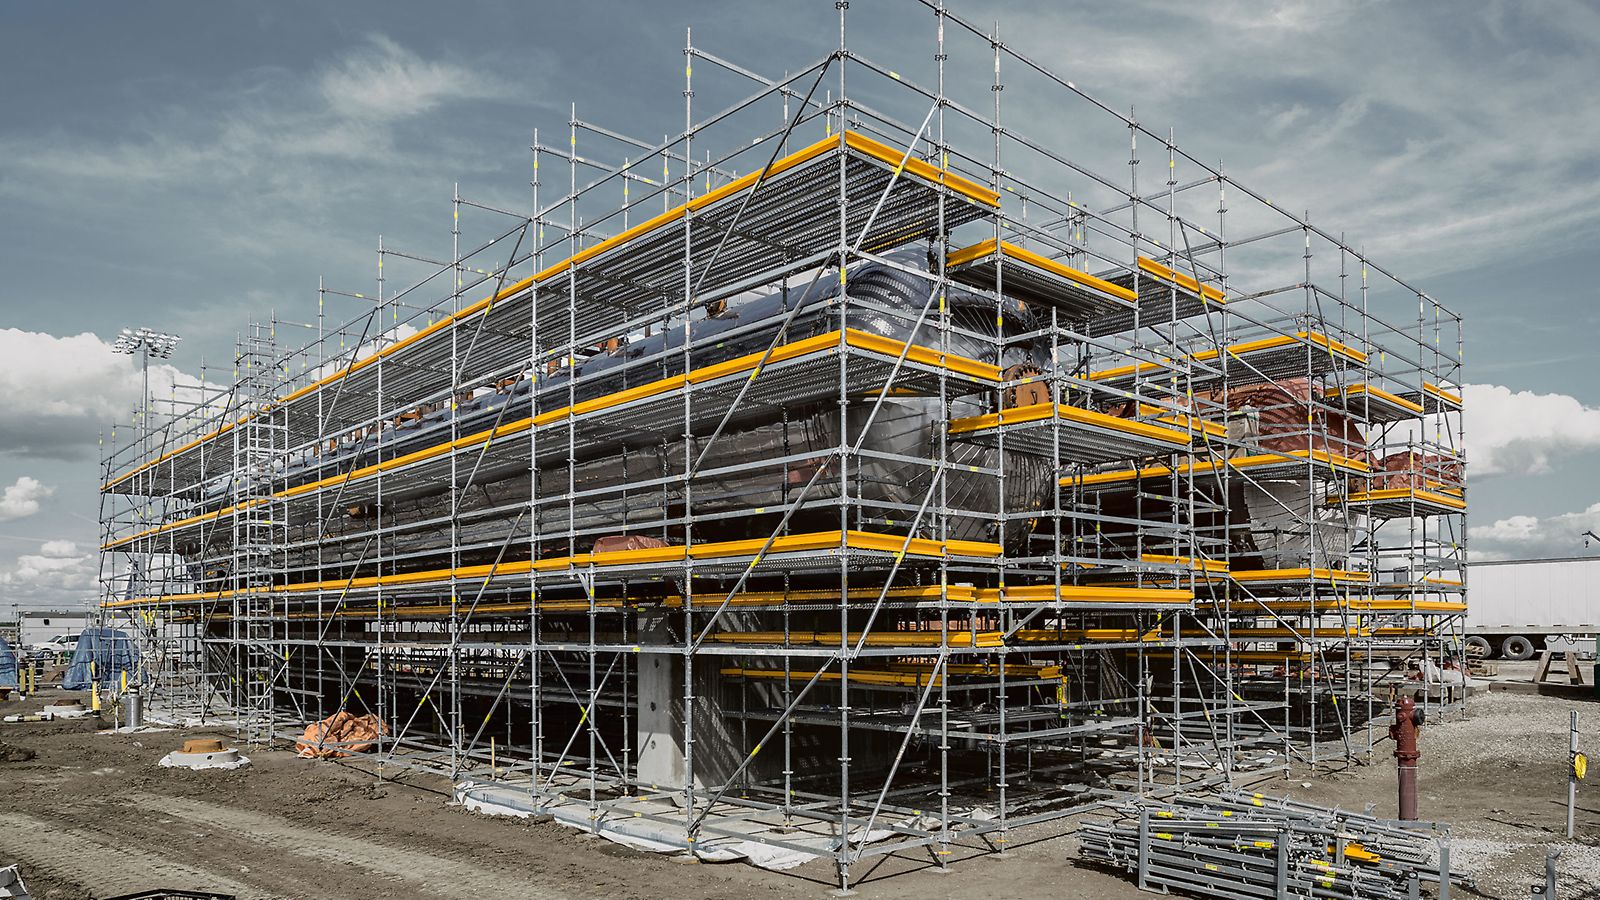 Building Construction Wallpaper Hd Peri Australia Pty Limited The Formwork And Scaffolding